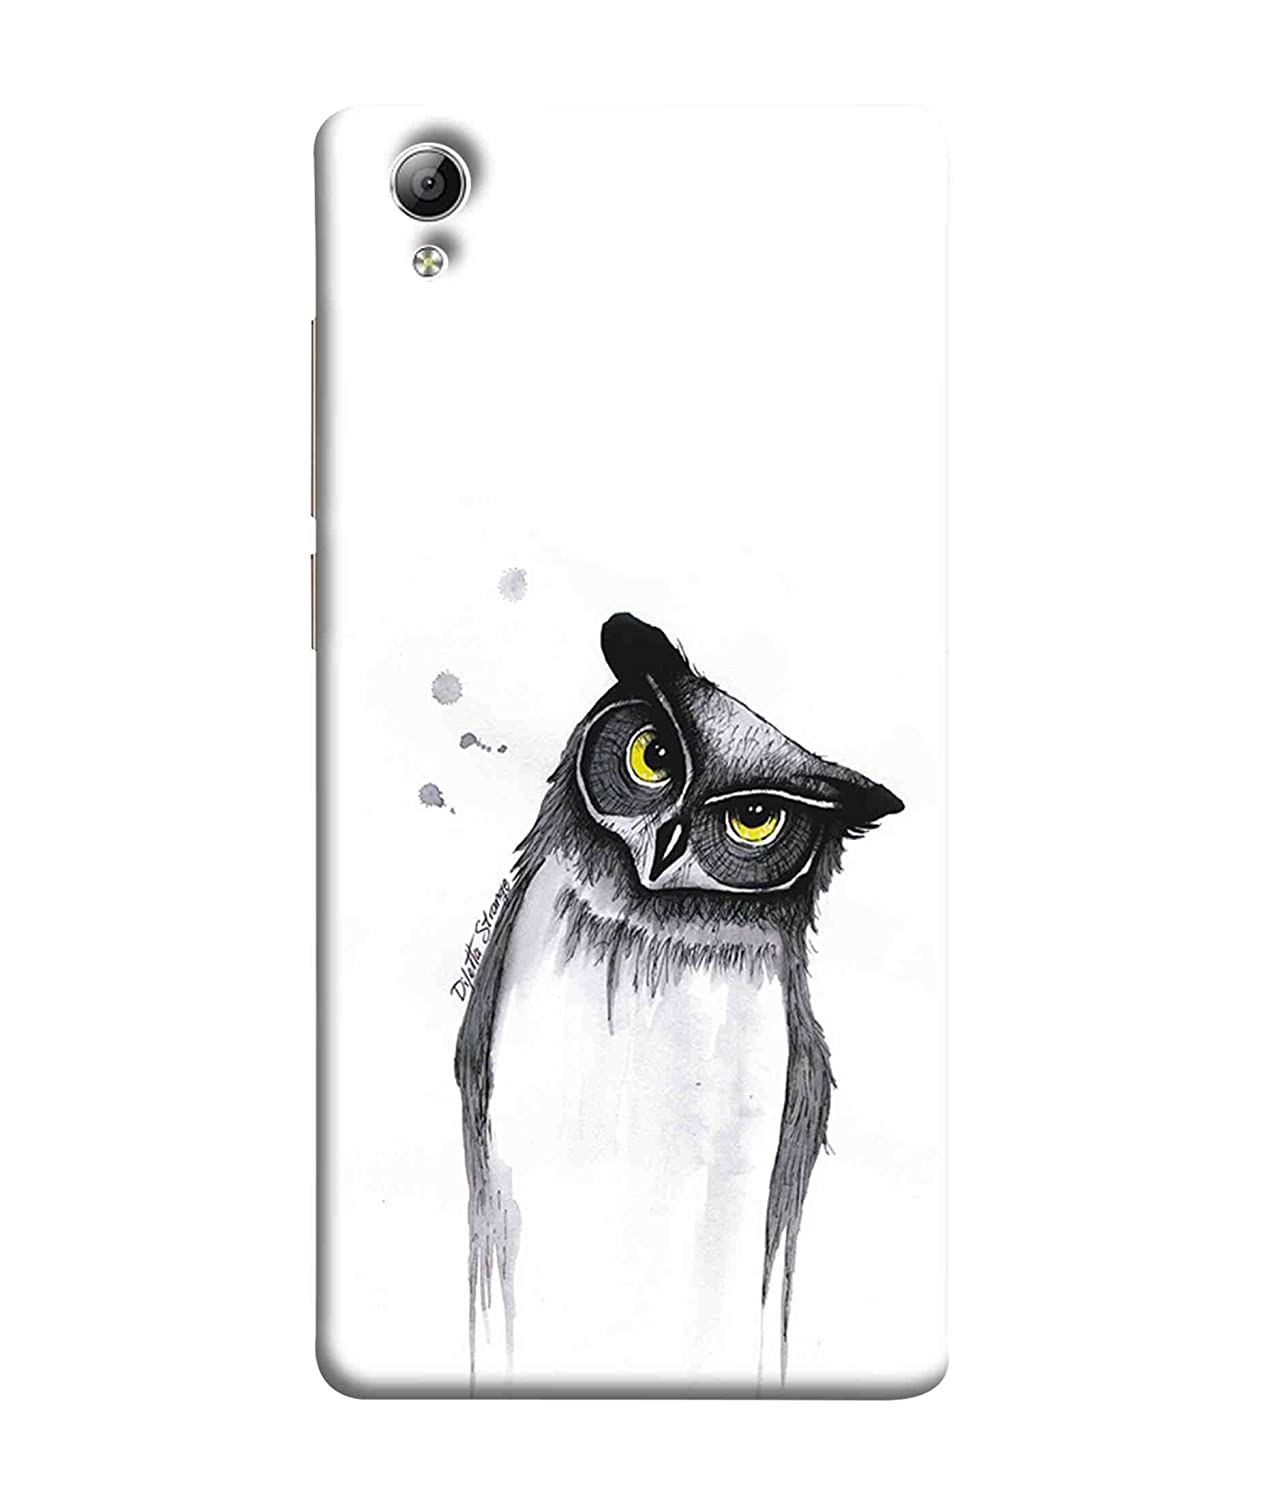 Printfidaa owl pencil sketch design vivo y51 amazon in electronics